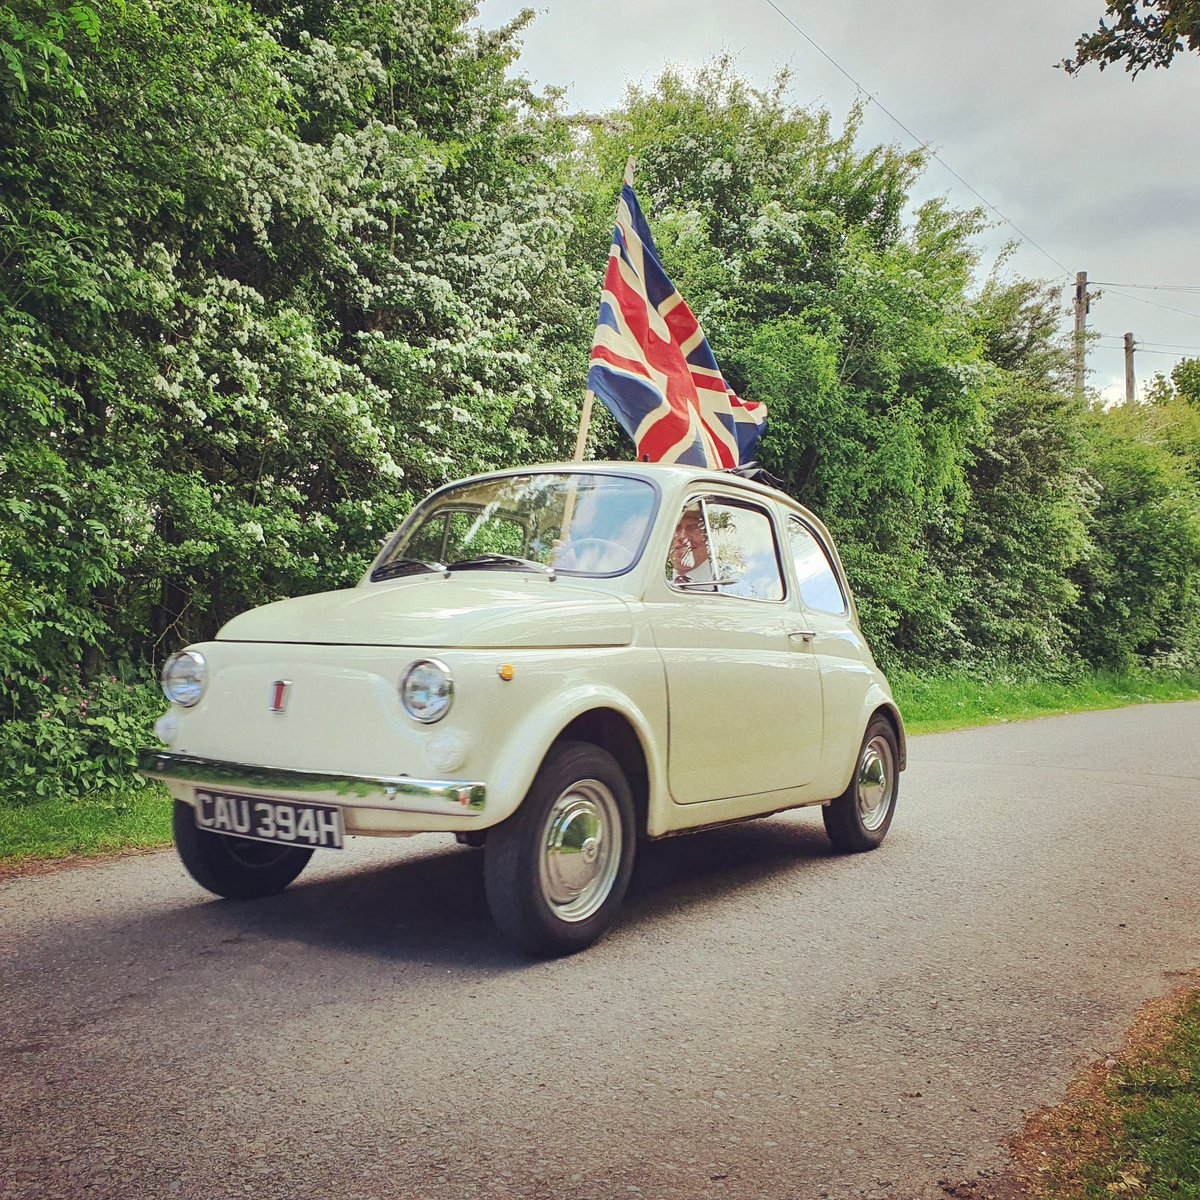 Brought a smile to people's faces today 🙂 🇬🇧  #VEDay #fiatfriday #fiat500 #VEDay75 https://t.co/Juxp4ulvCV